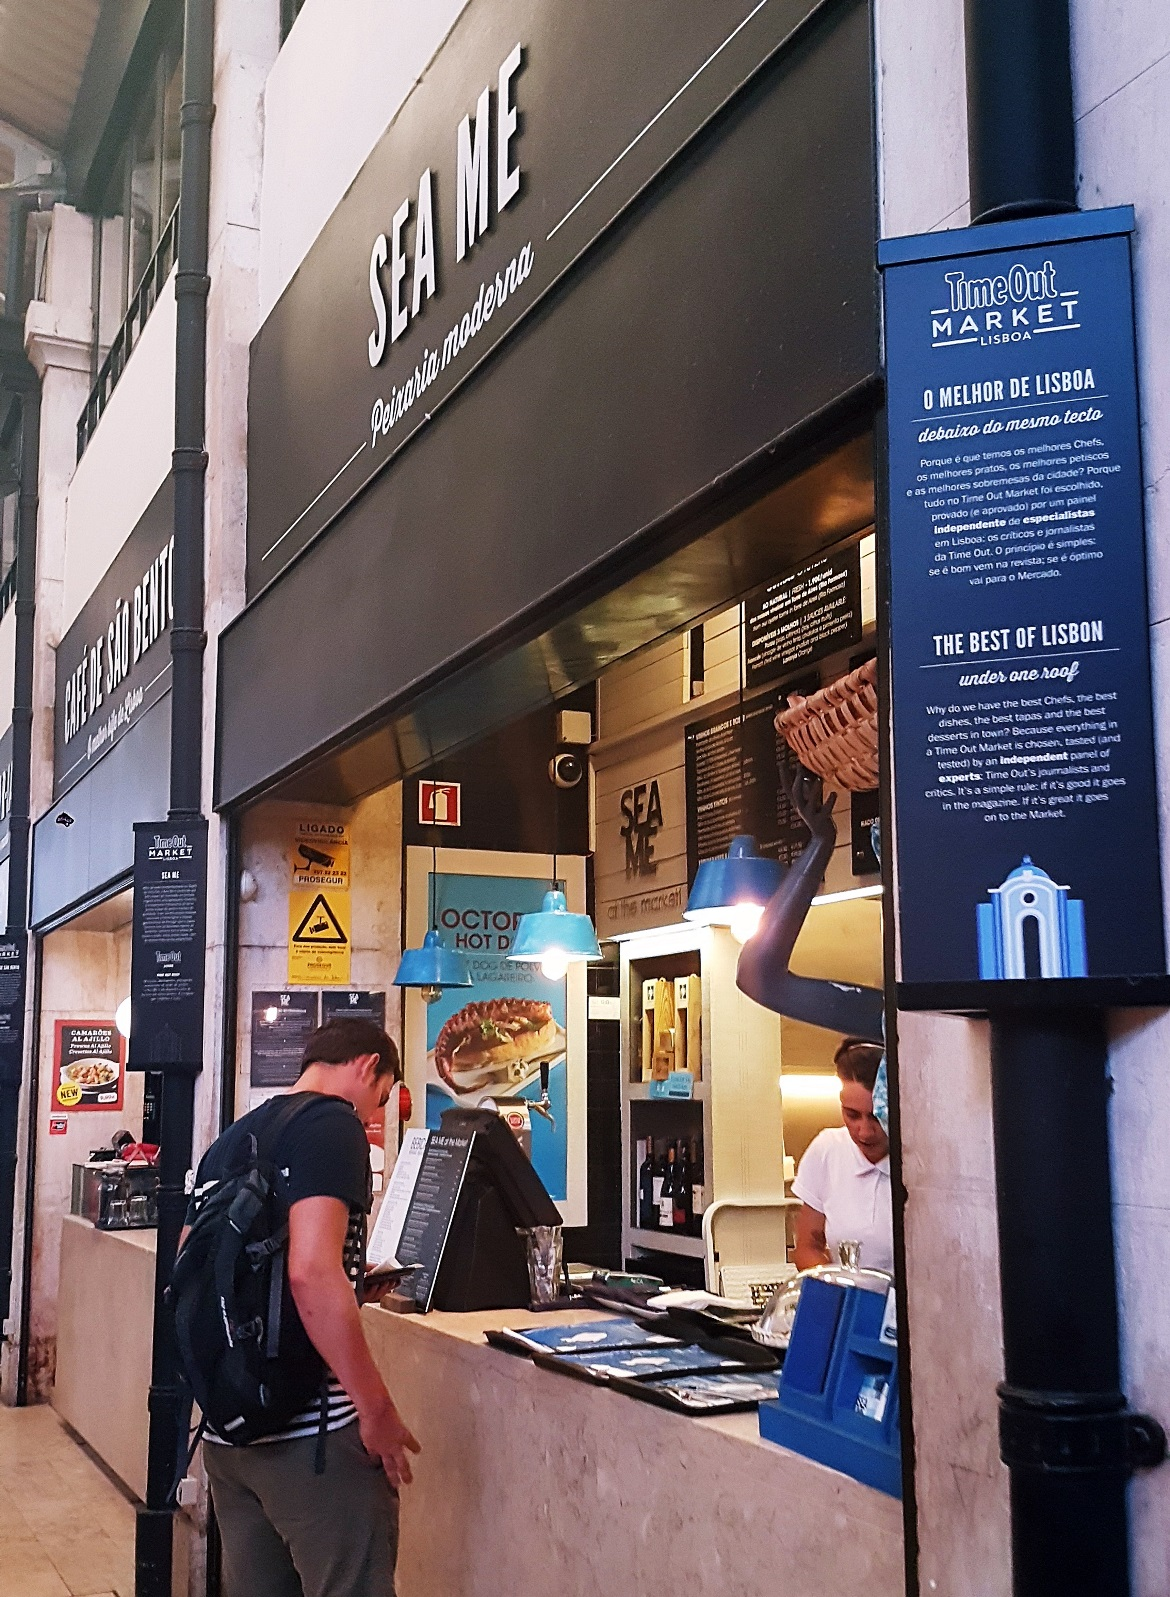 A food stall at Time Out Market - Food and Drink in Lisbon, review by BeckyBecky Blogs